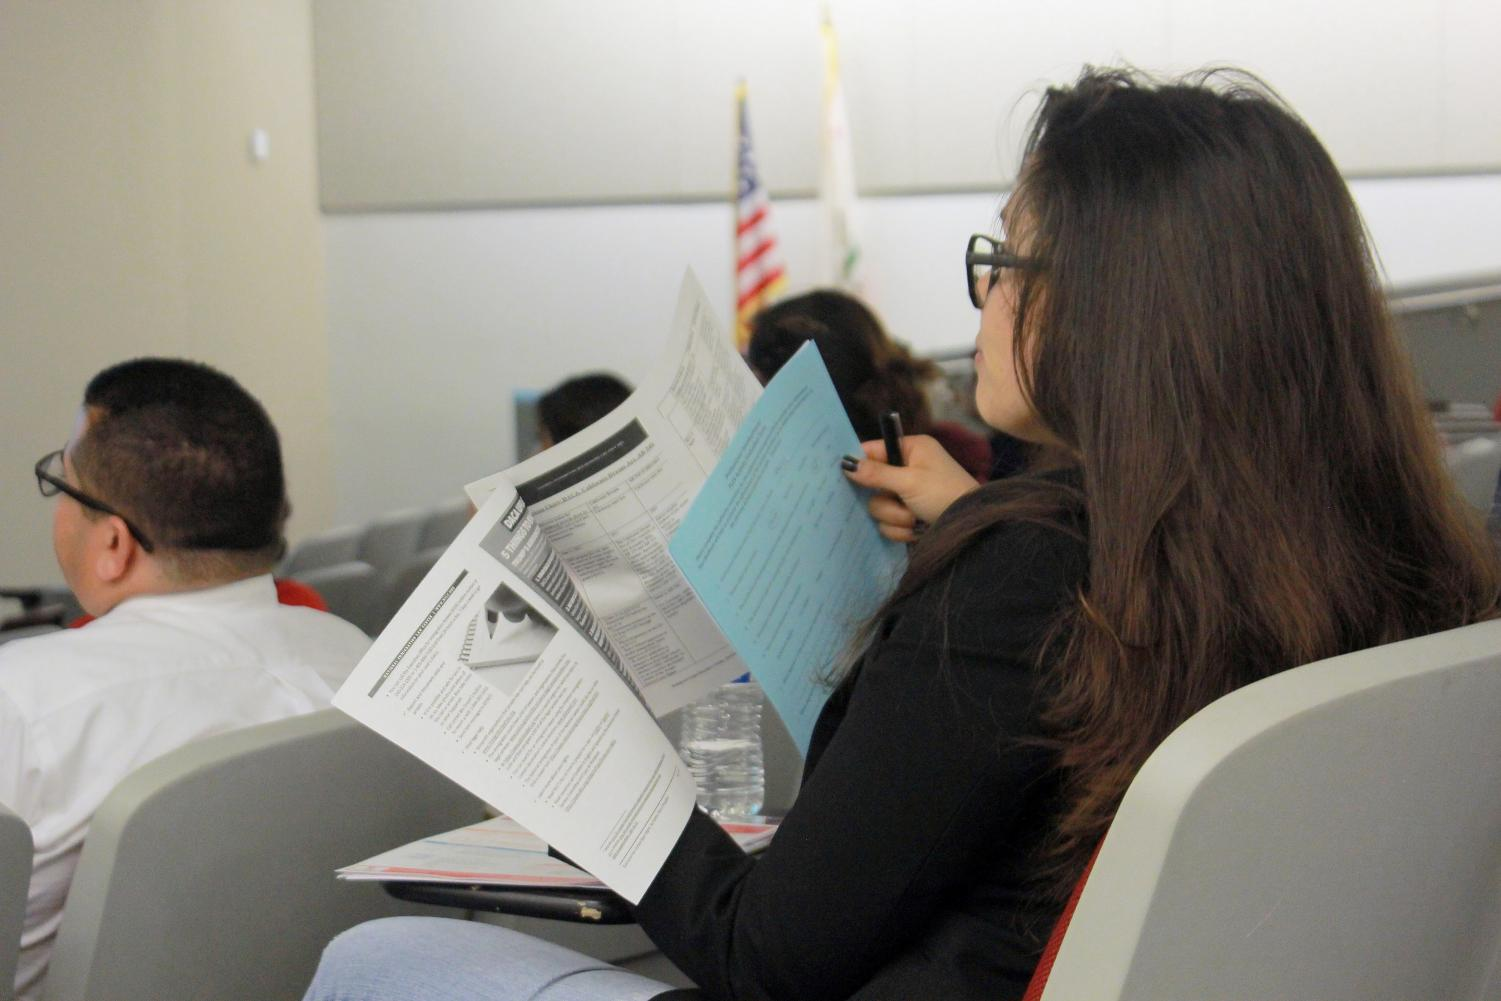 San Diego City College Student Services Council sponsored a How to Support Undocumented Students Workshop on Oct. 19.